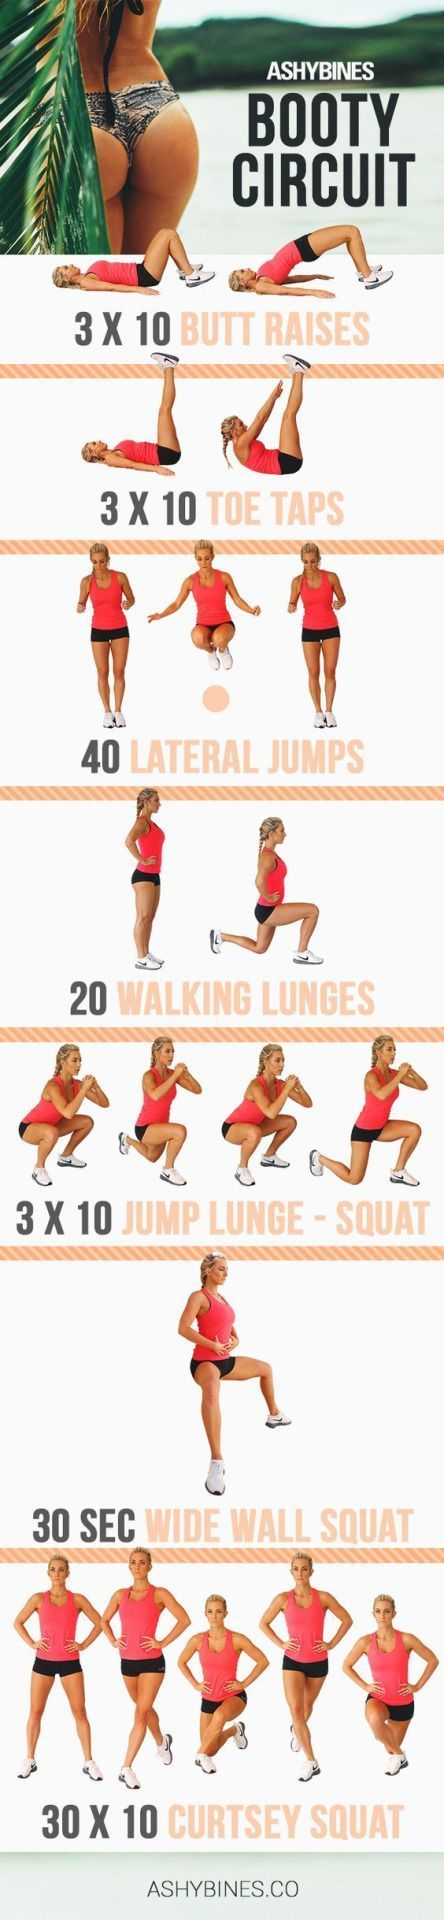 Curtsey squats are the best! -